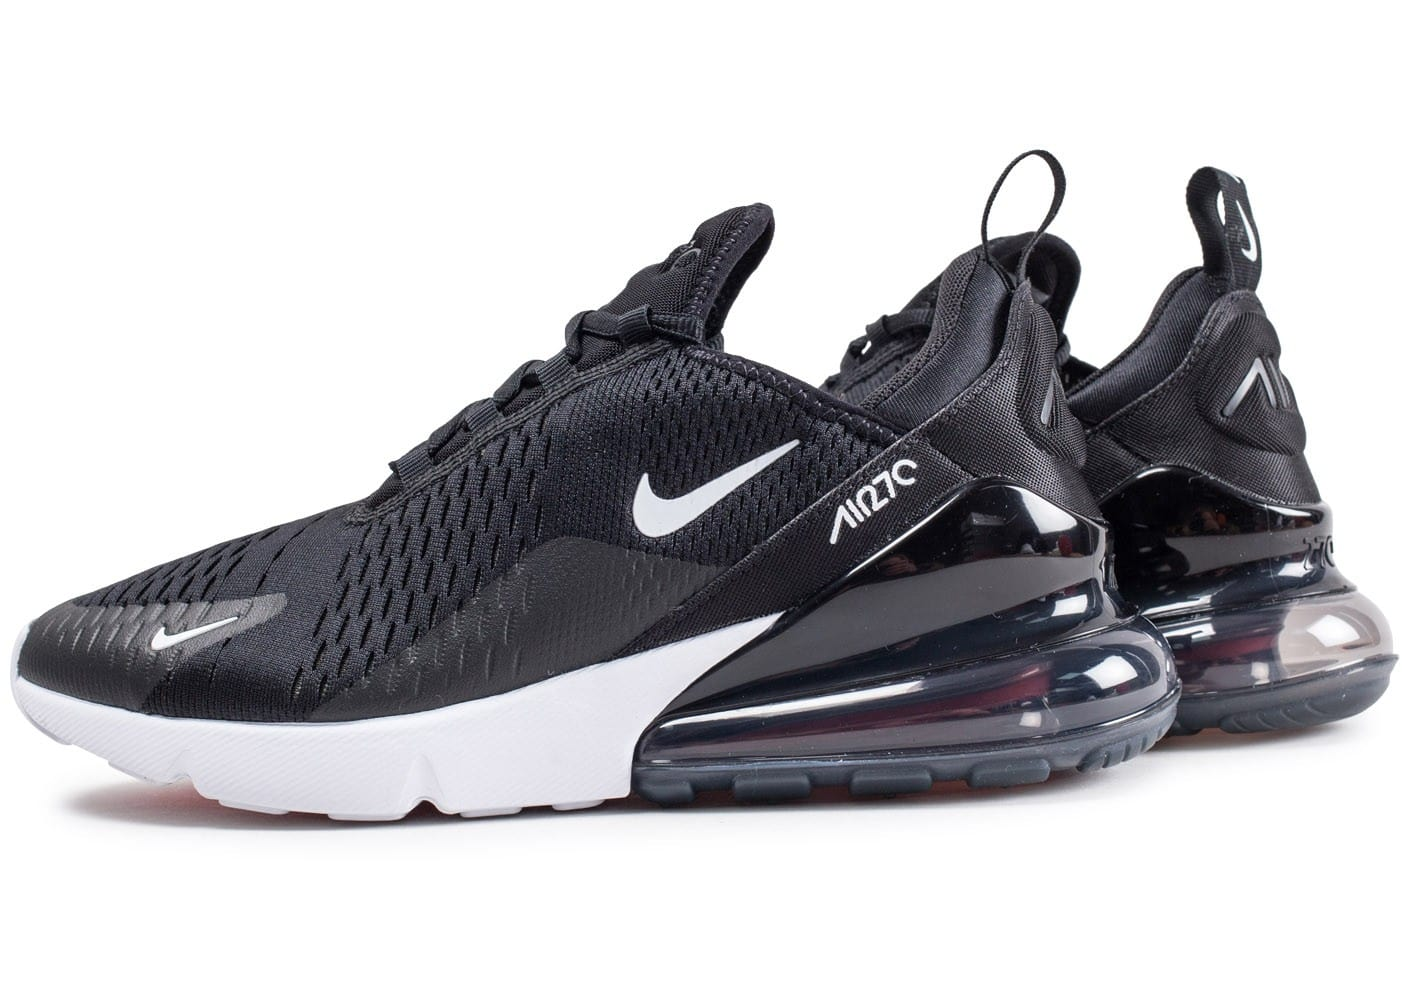 nike air max 270 noire et blanche chaussures baskets homme chausport. Black Bedroom Furniture Sets. Home Design Ideas